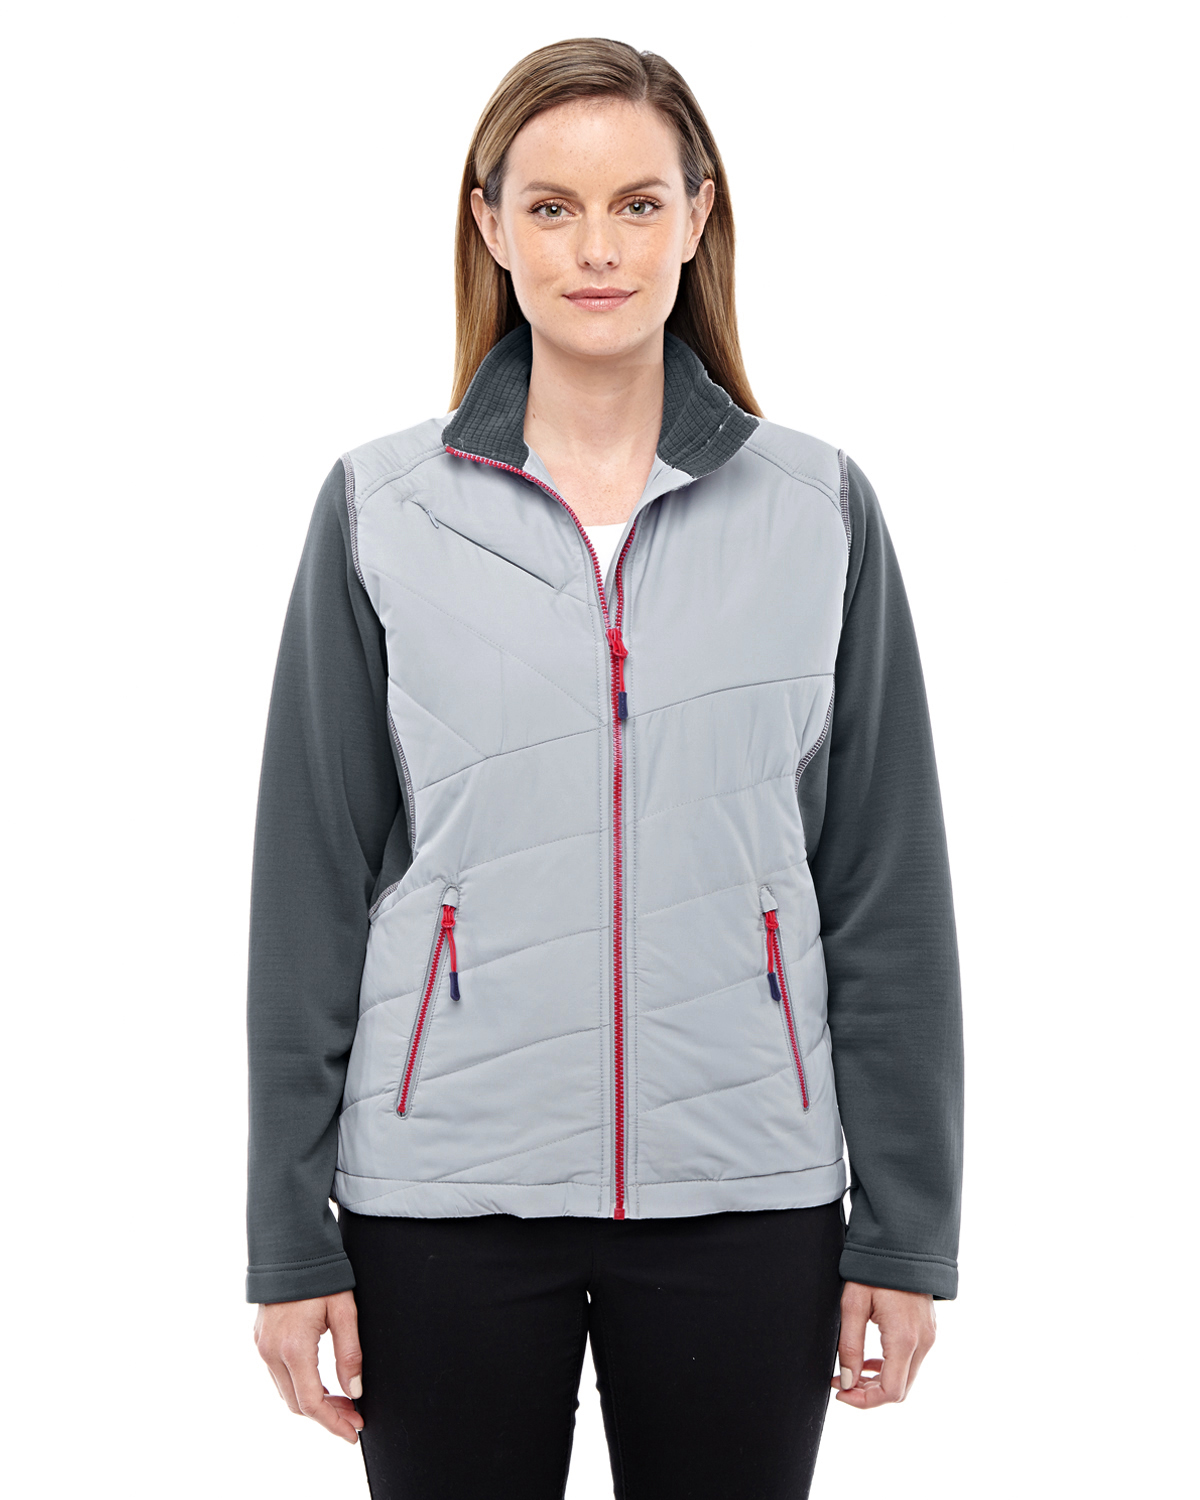 Ash City - North End Sport Red 78809 - Ladies' Quantum Interactive Hybrid Insulated Jacket